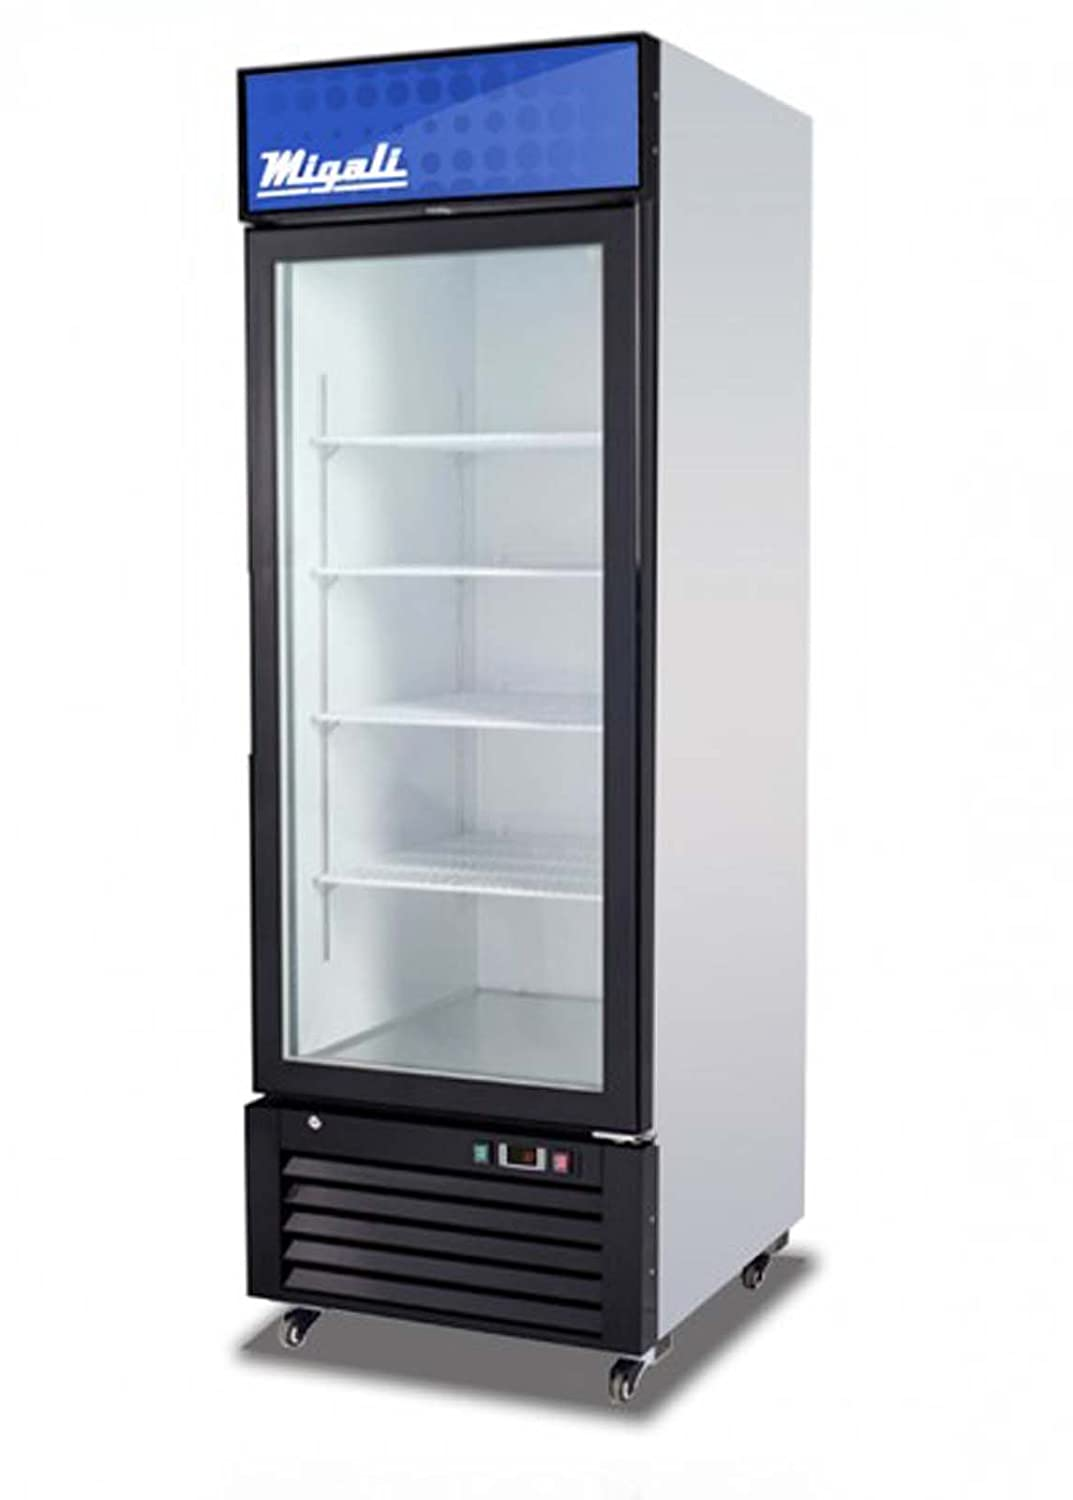 "Migali C-23RM Competitor Series Refrigerator Merchandiser, 27"" W, 23.0 cu. ft. Capacity, 1 Hinged Glass Door, White Sides/White Interior/Black Front"